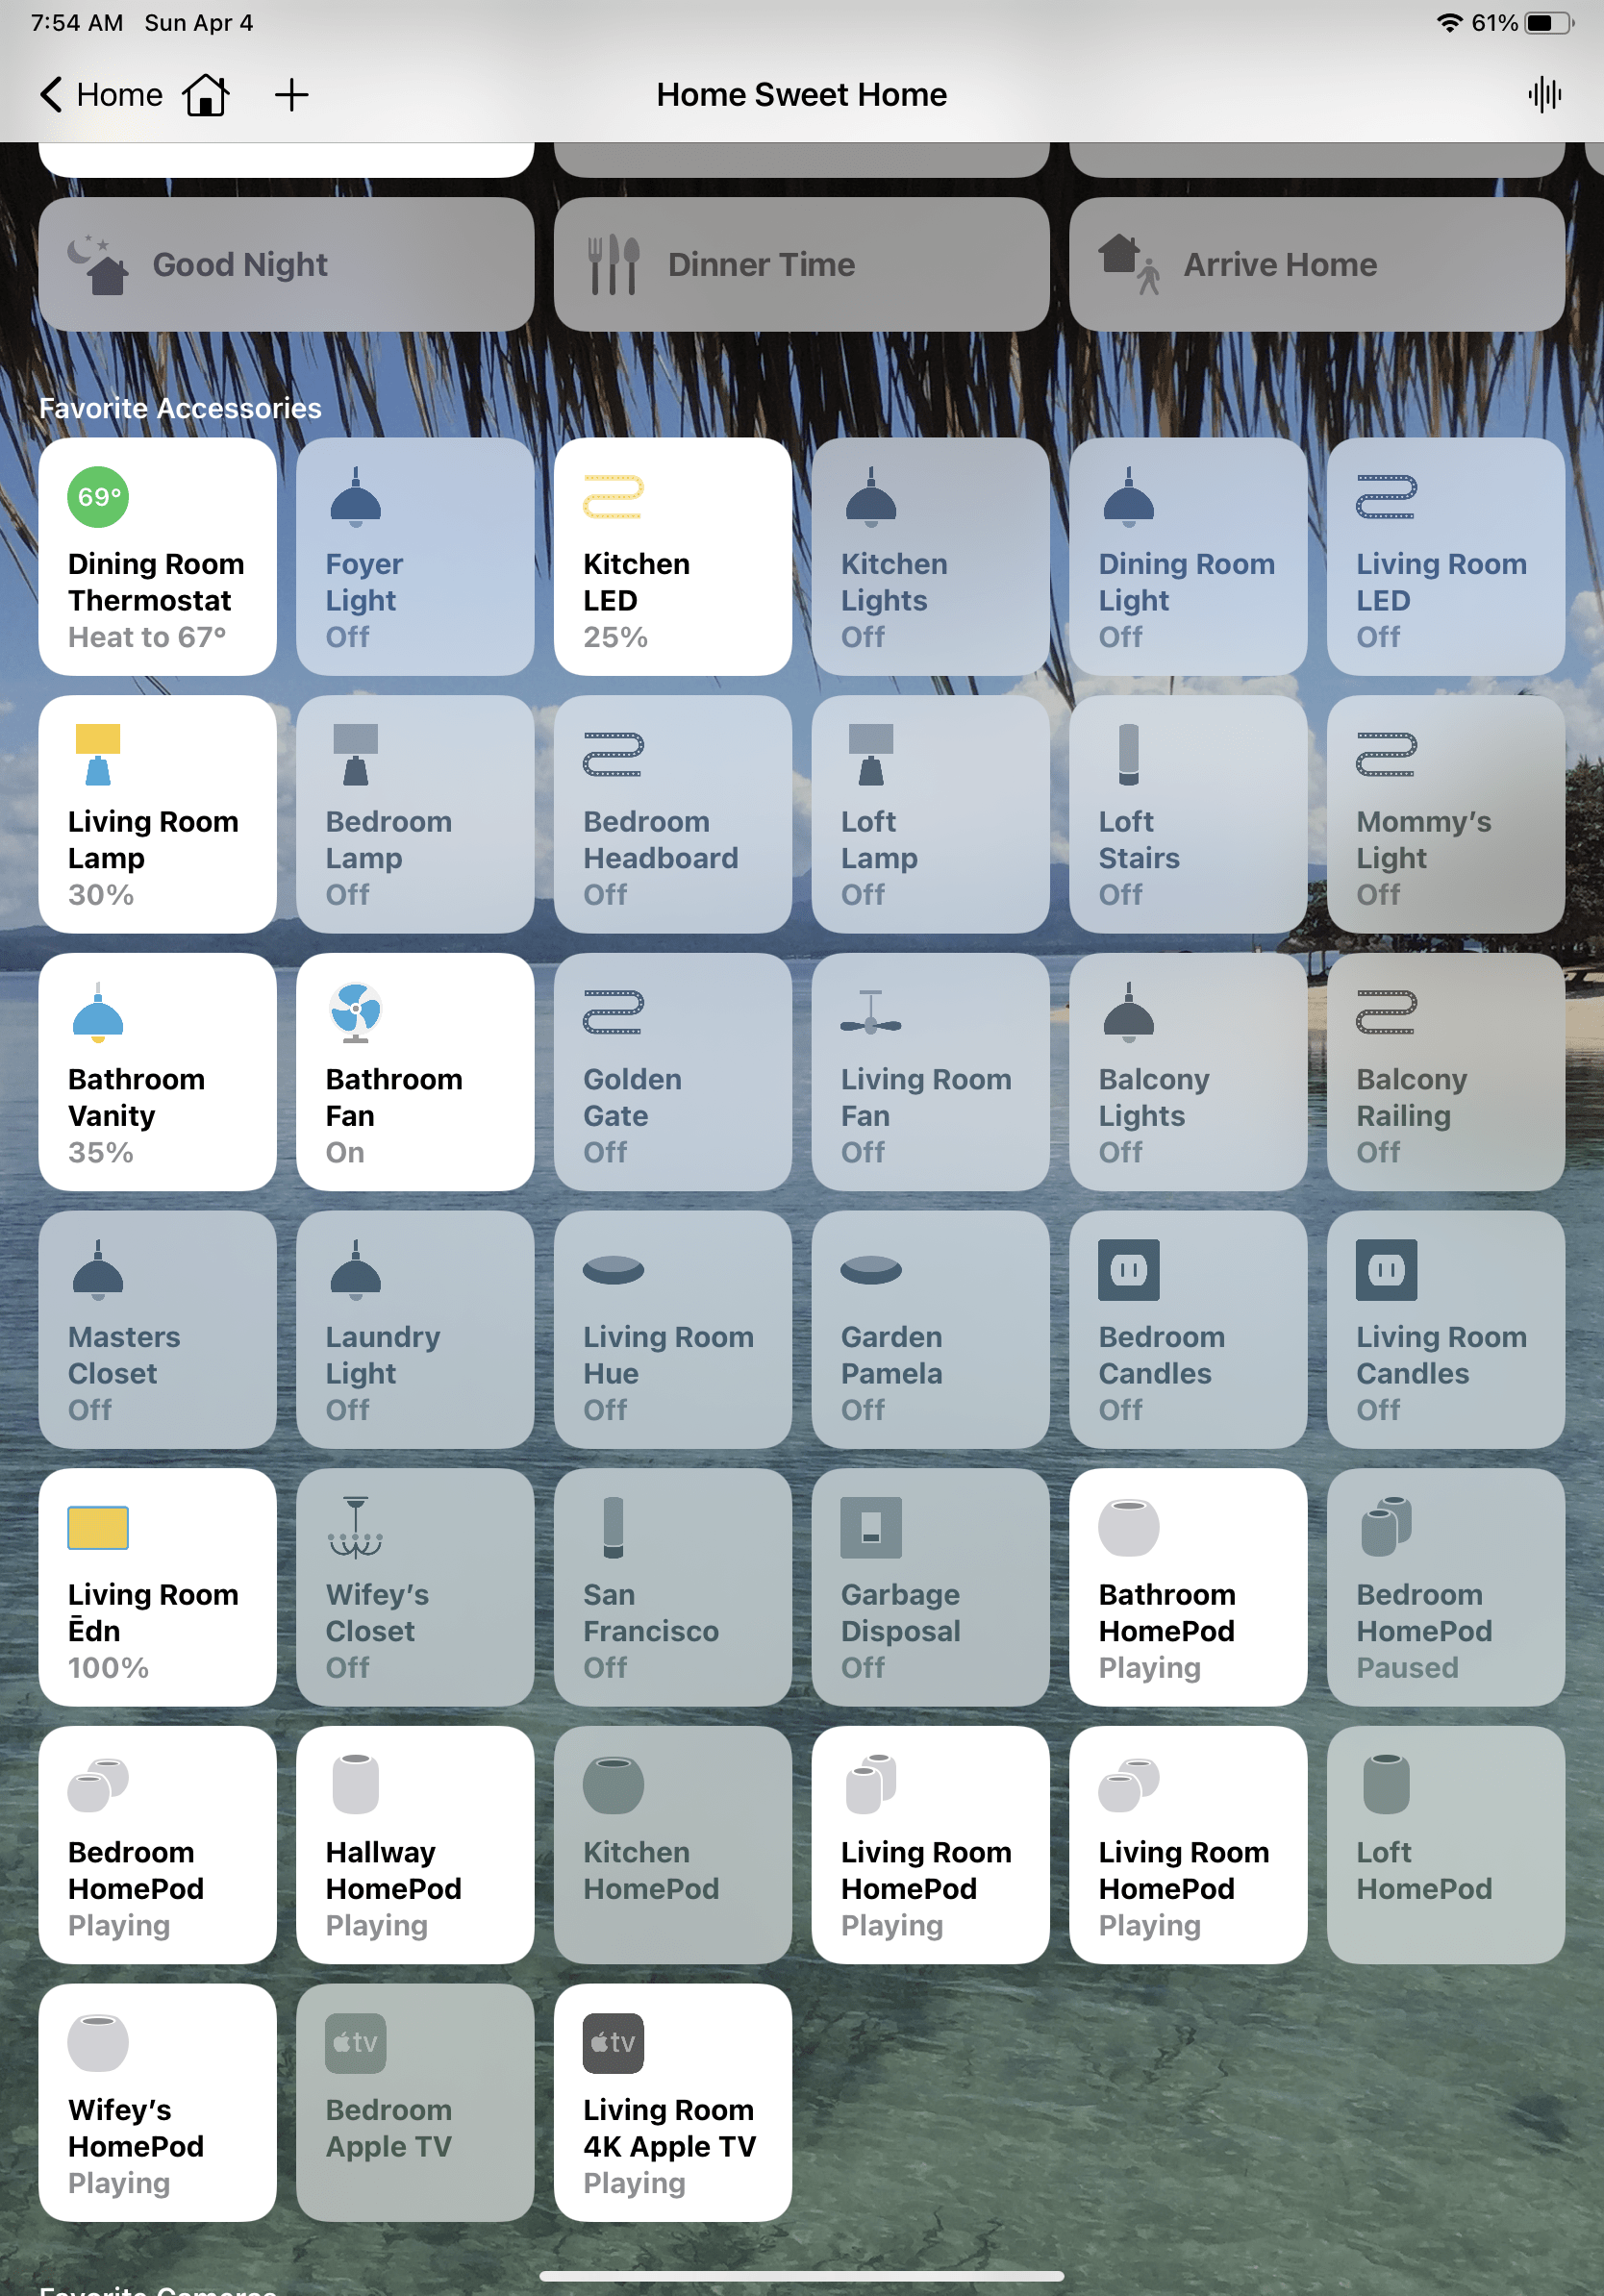 More HomePods added to HomeKit YOLO who cares if they